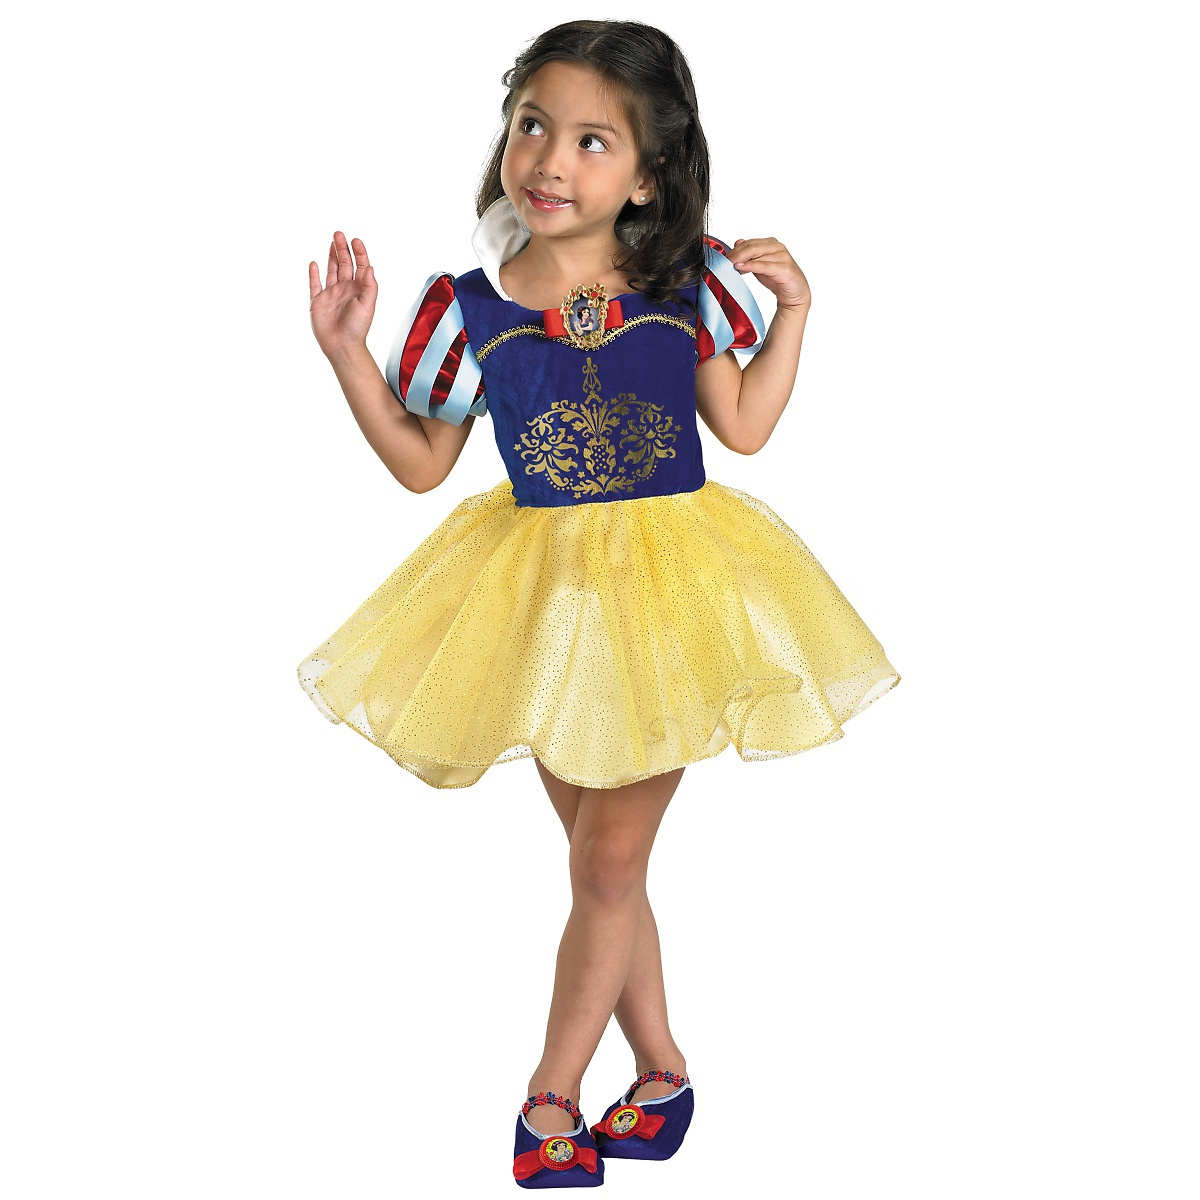 Disguise Snow White Costume Toddler Kids Disney Princess Outfit Halloween Fancy Dress